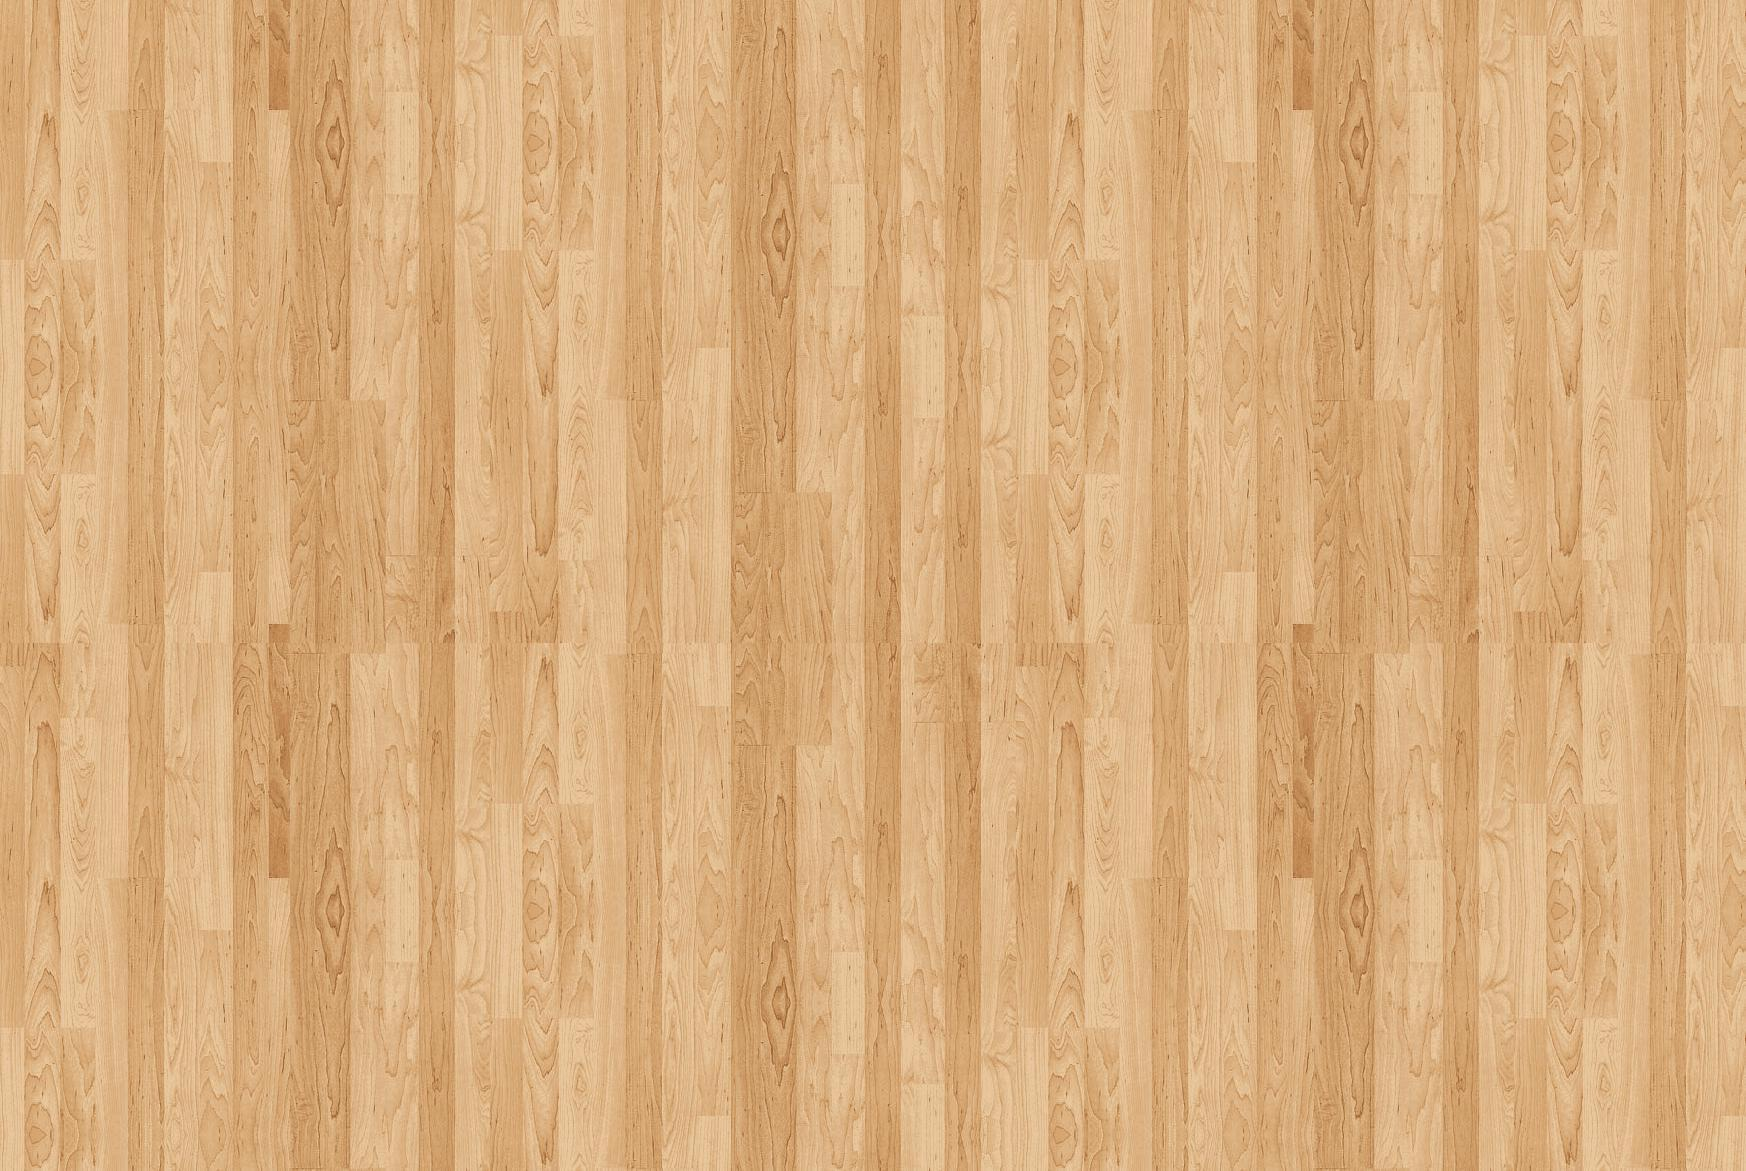 HD Wood Backgrounds 1746x1171